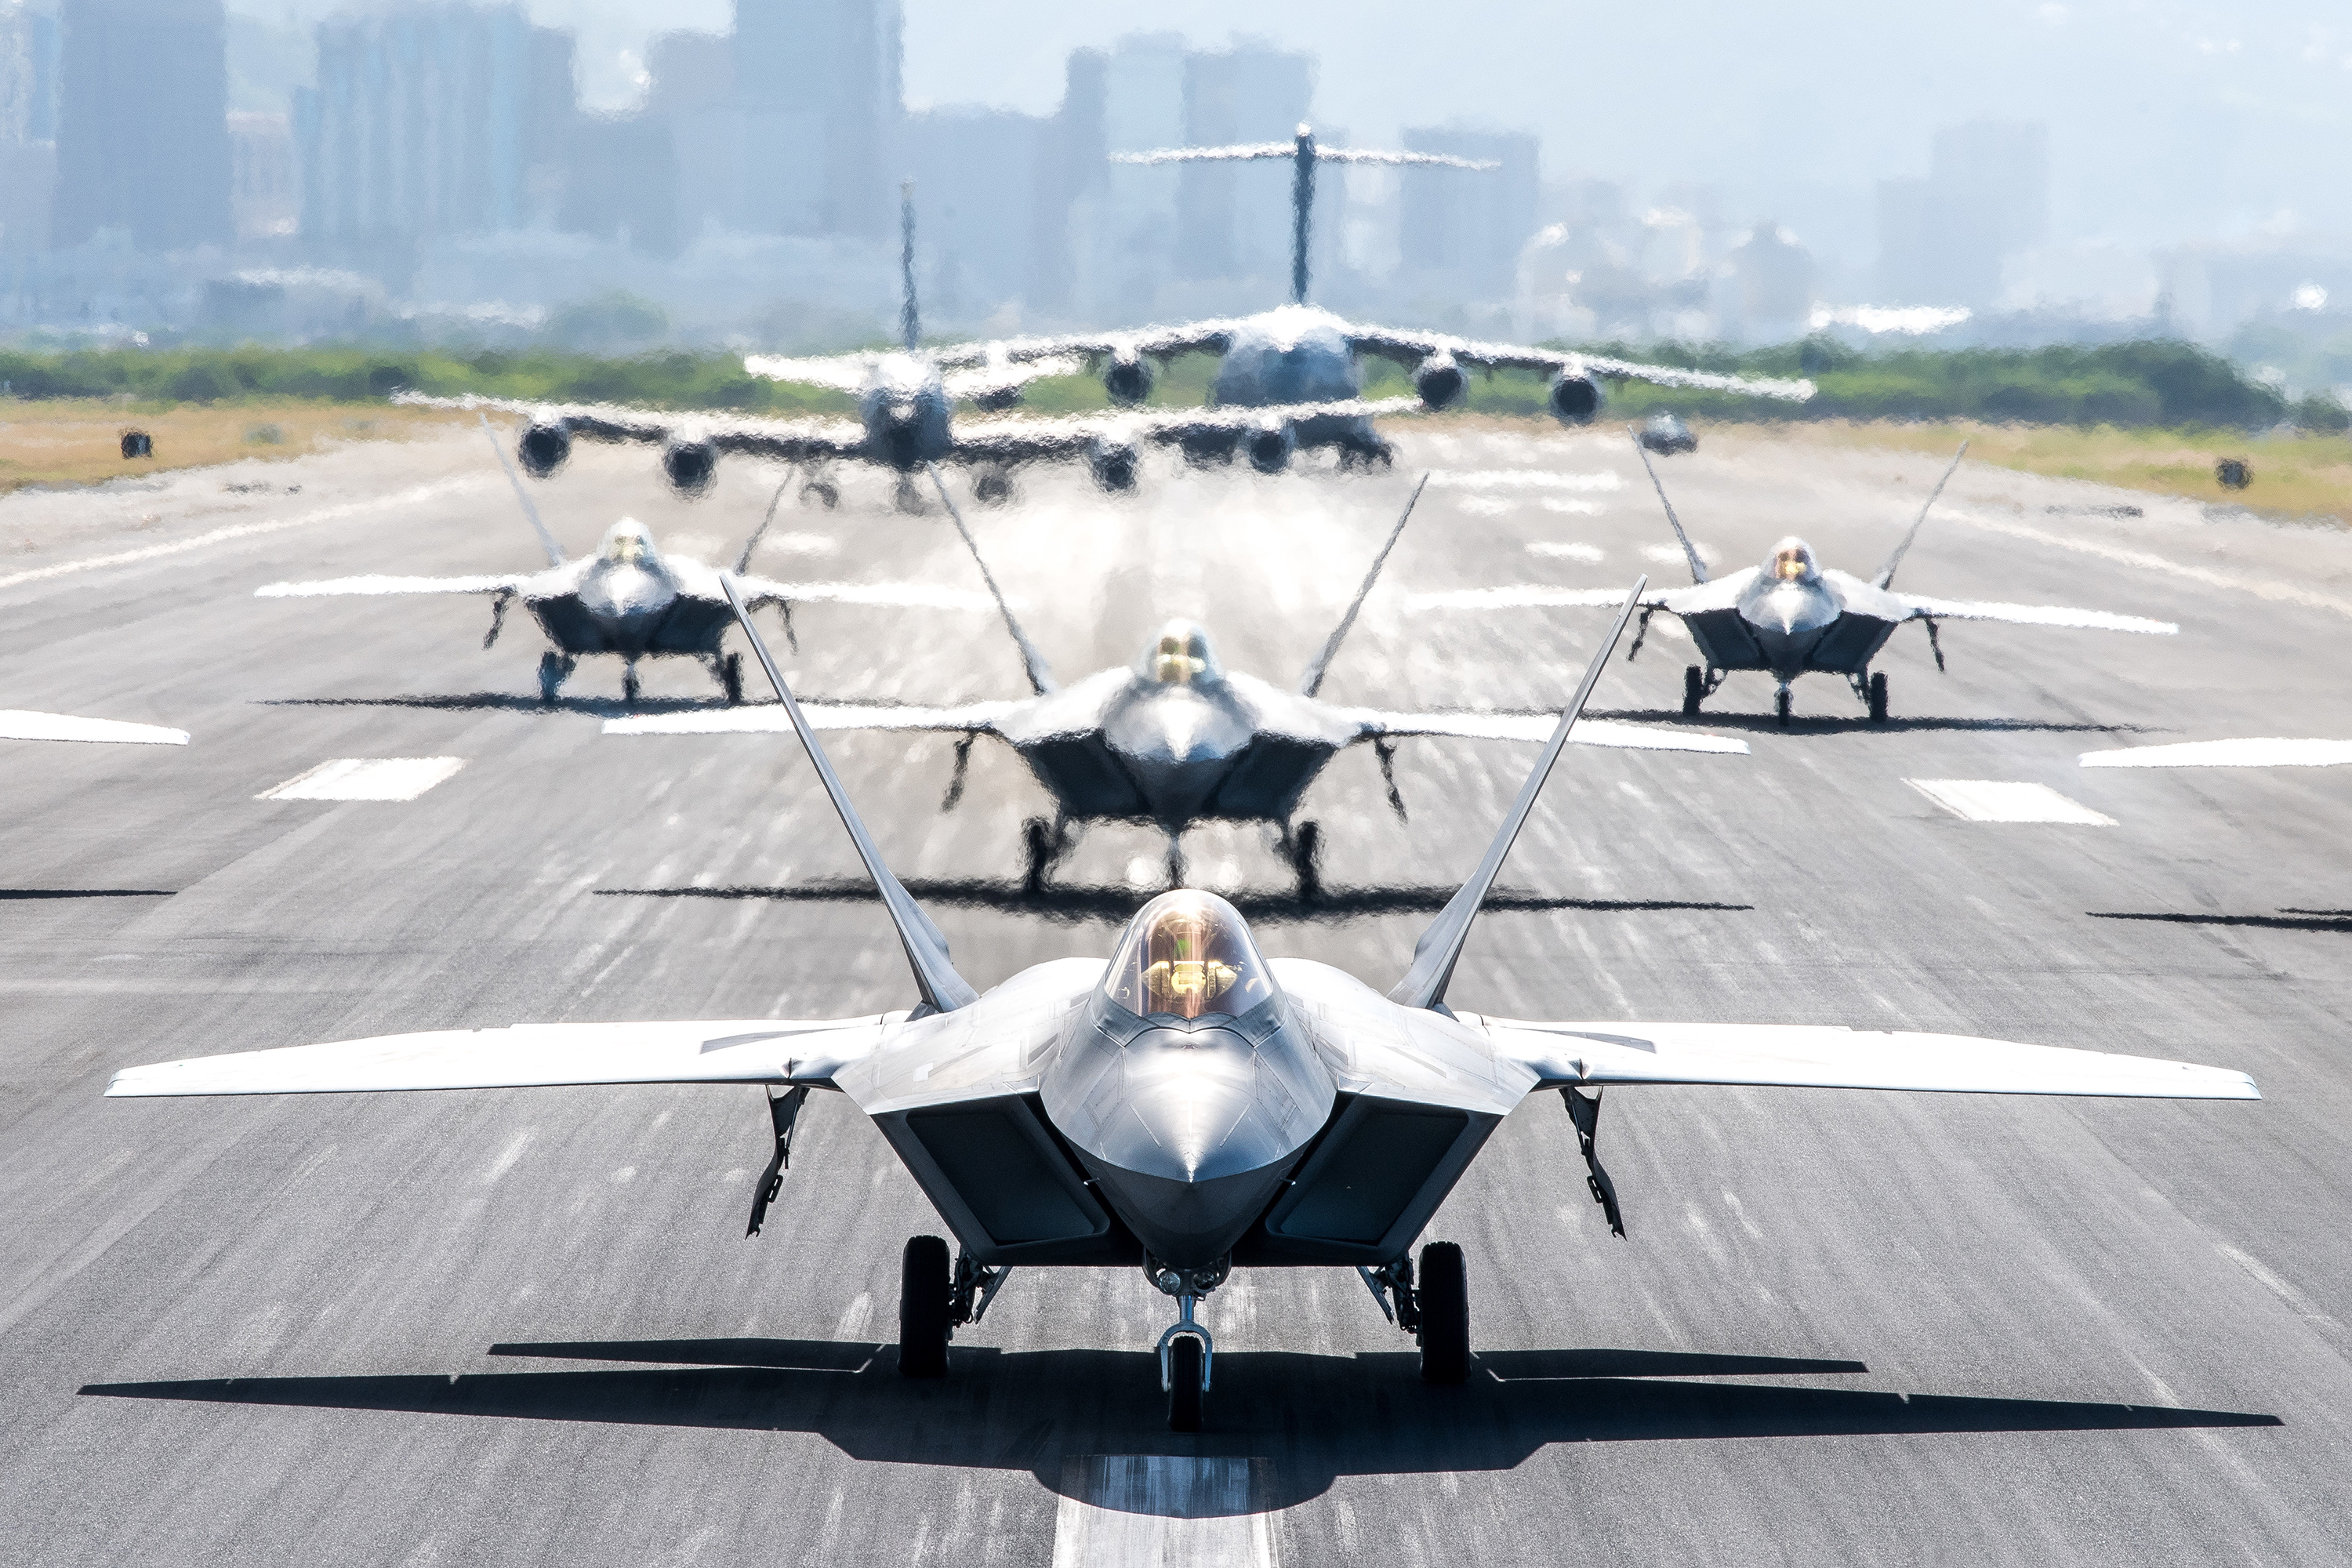 F-22 Raptors, a KC-135 Stratotanker and a C-17 Globemaster III taxi on the runway during a routine training schedule April 21, 2020, at Honolulu International Airport, Hawaii. (Senior Airman John Linzmeier/Air National Guard)